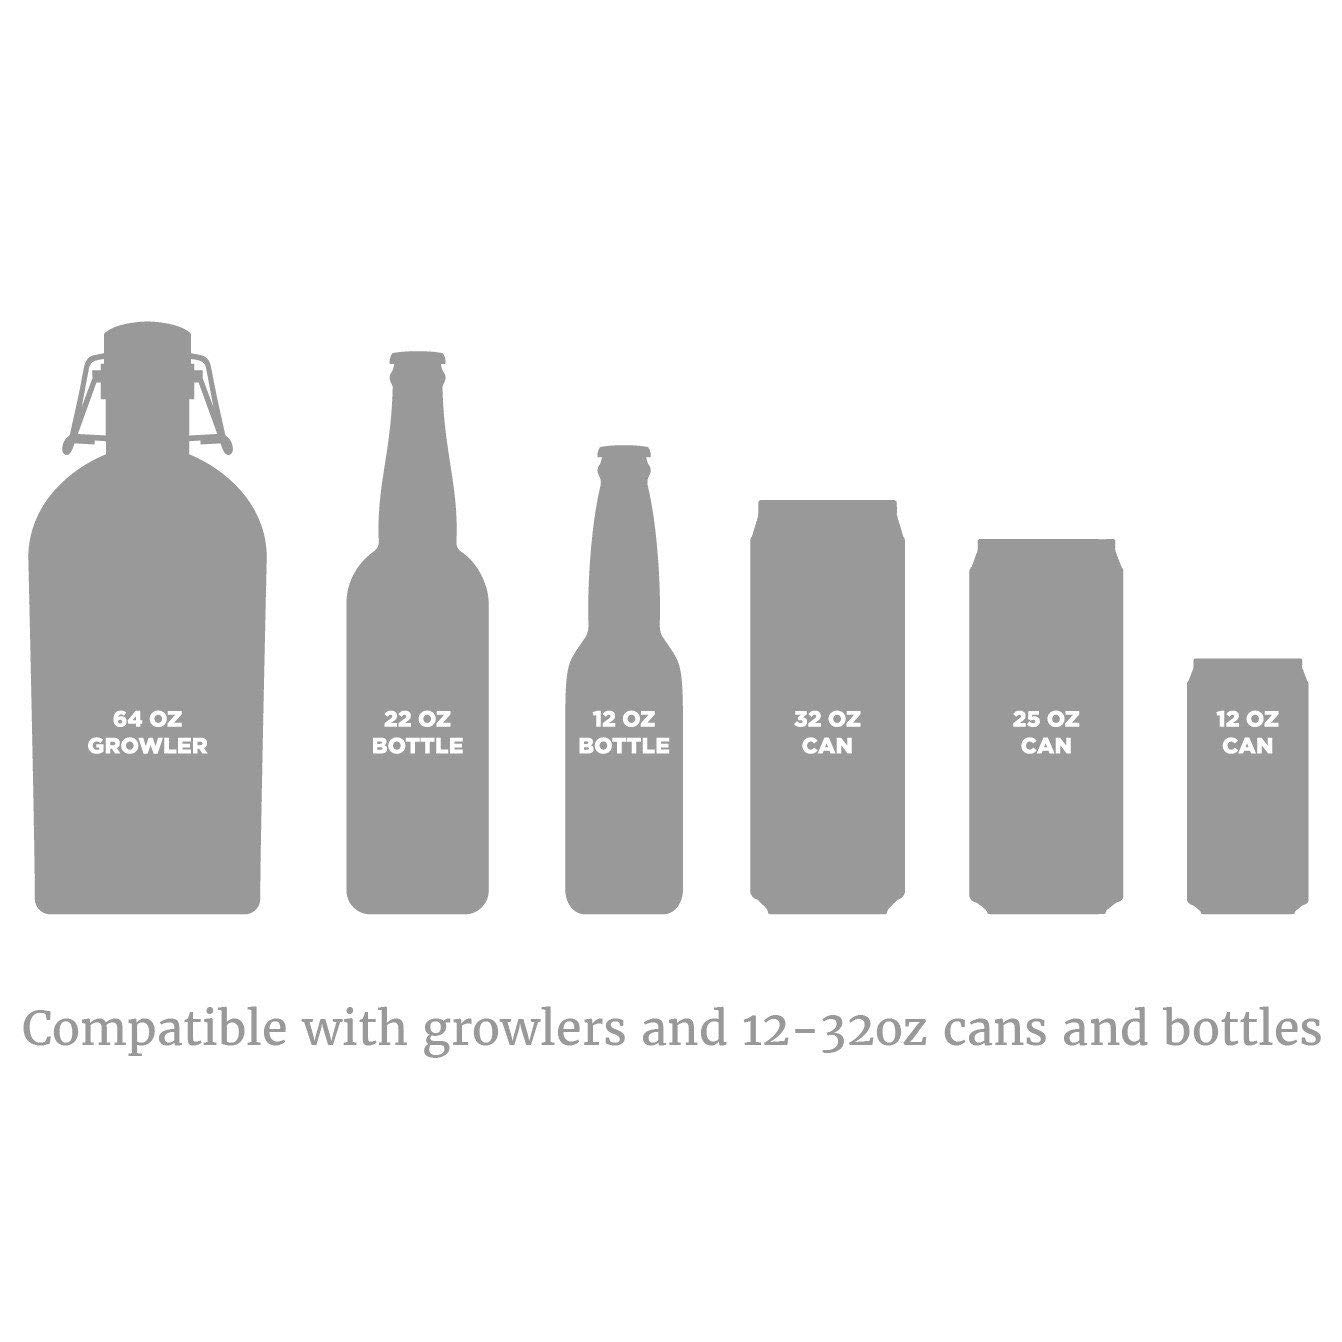 Fizzics Original. Portable Beer System with Fizzics Micro-foam Technology for a Bottle to Draft Experience (for 64 oz. growlers, cans and bottles).